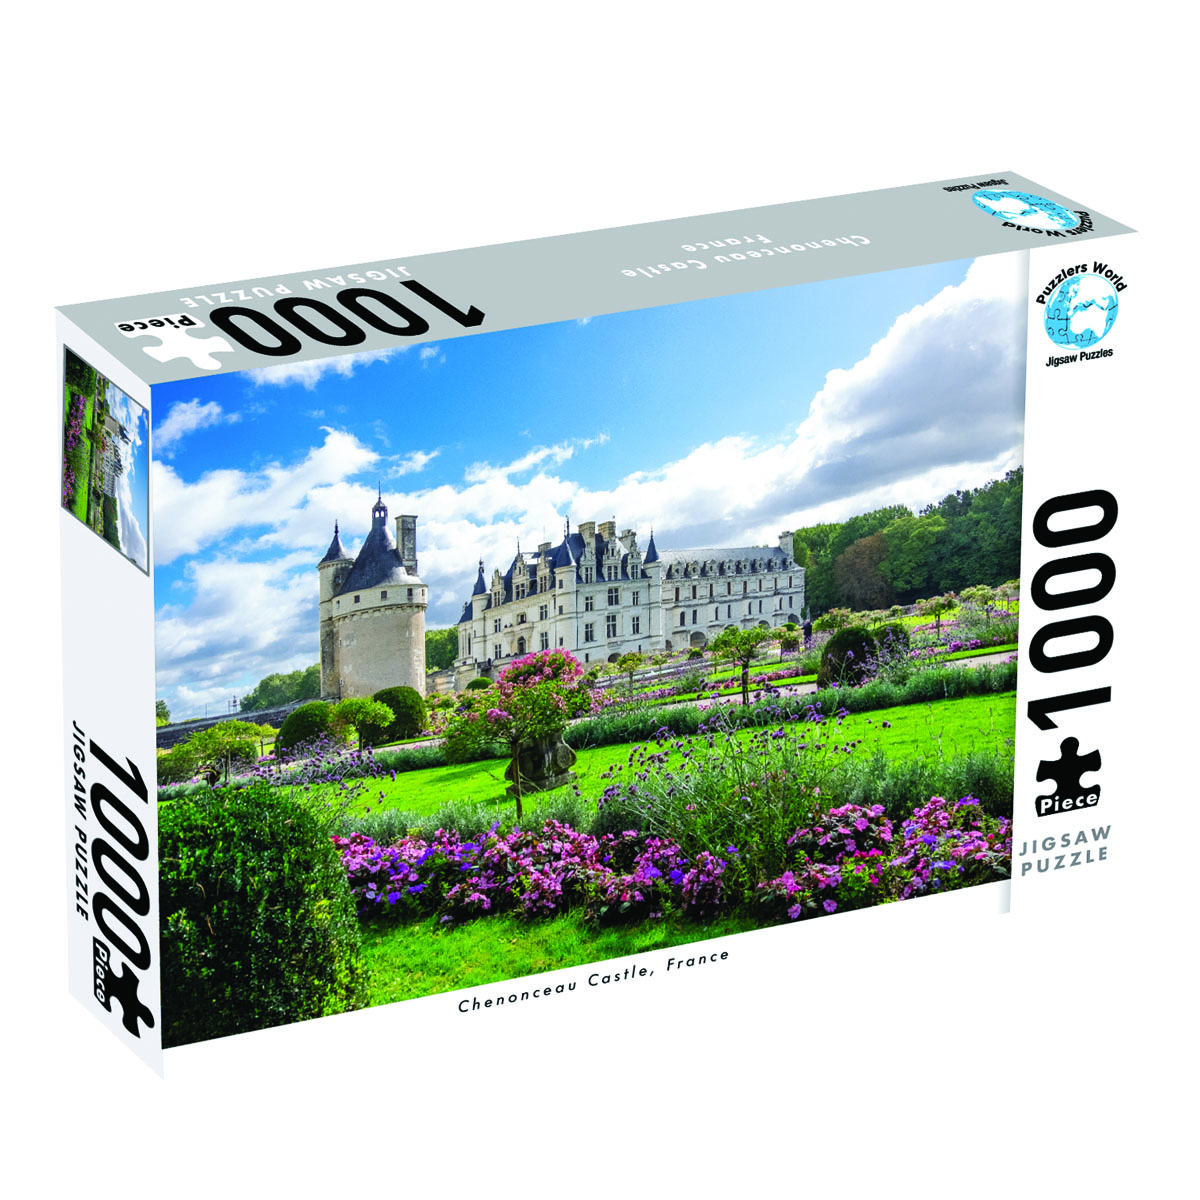 Puzzlers World ~ Artistic Jigsaw 1000pc Puzzle ~ Chenonceau Castle France